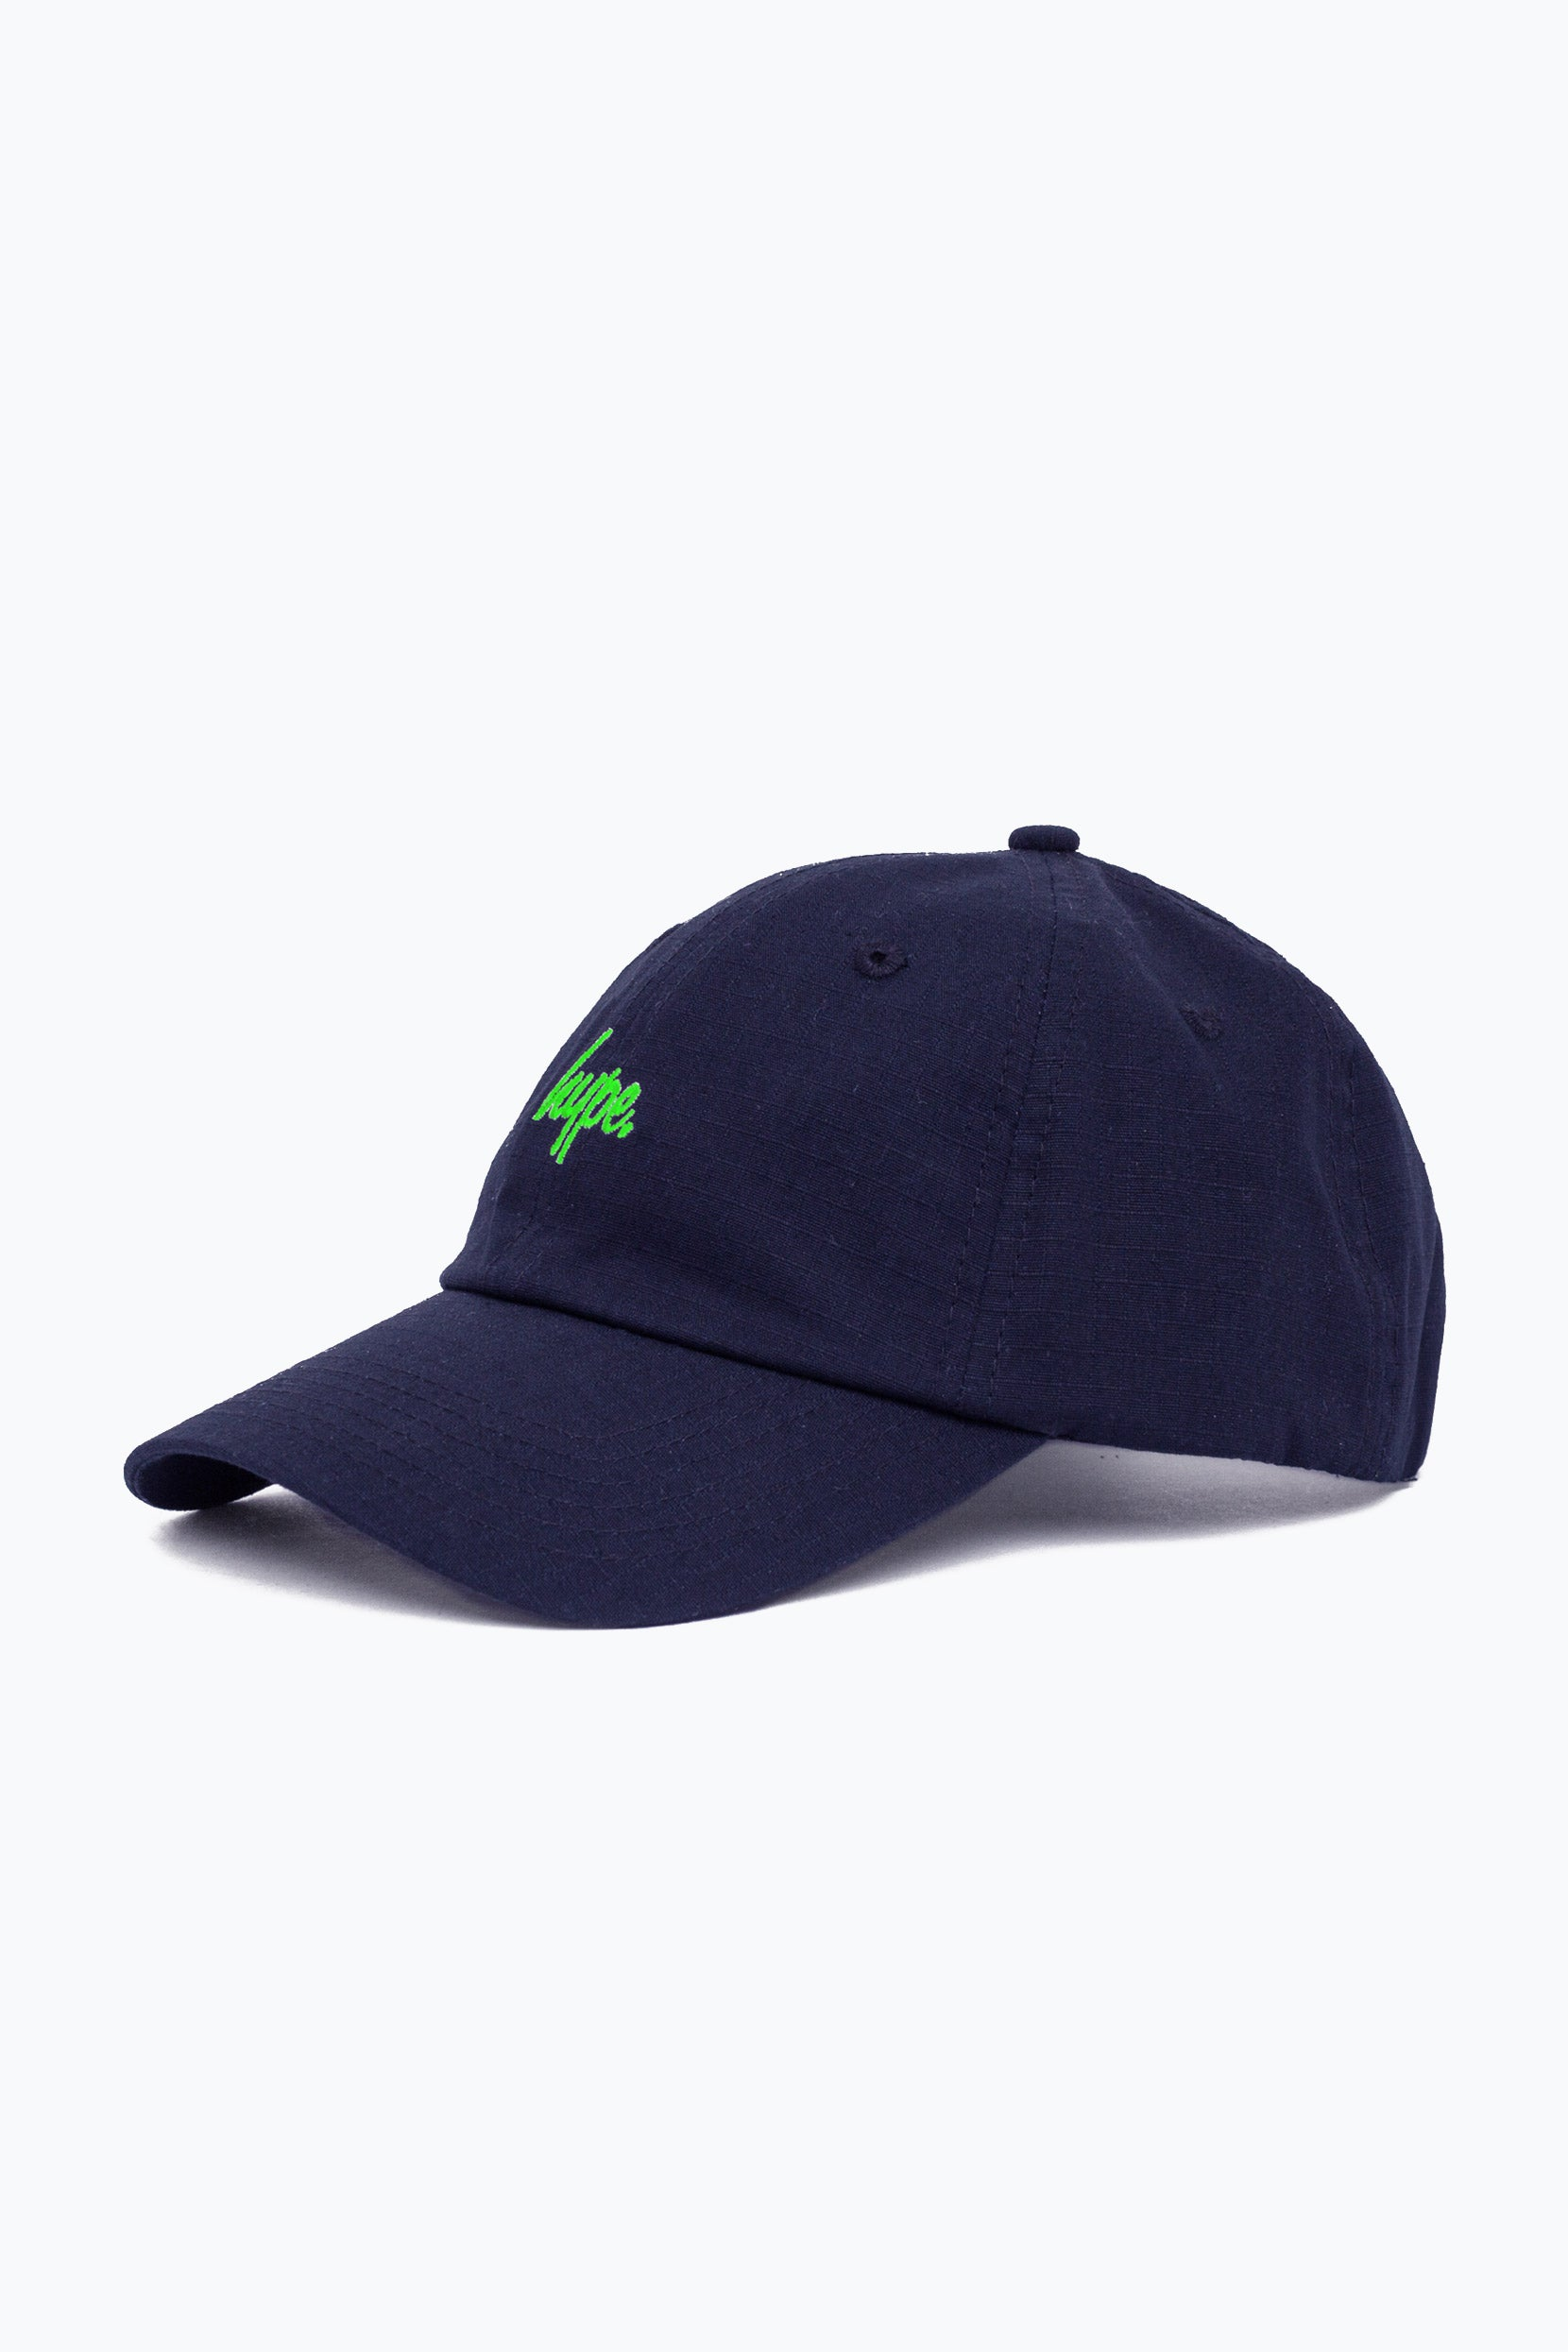 be9f54f5 HYPE NAVY GREEN NEON FLASH DAD HAT – JustHype ltd